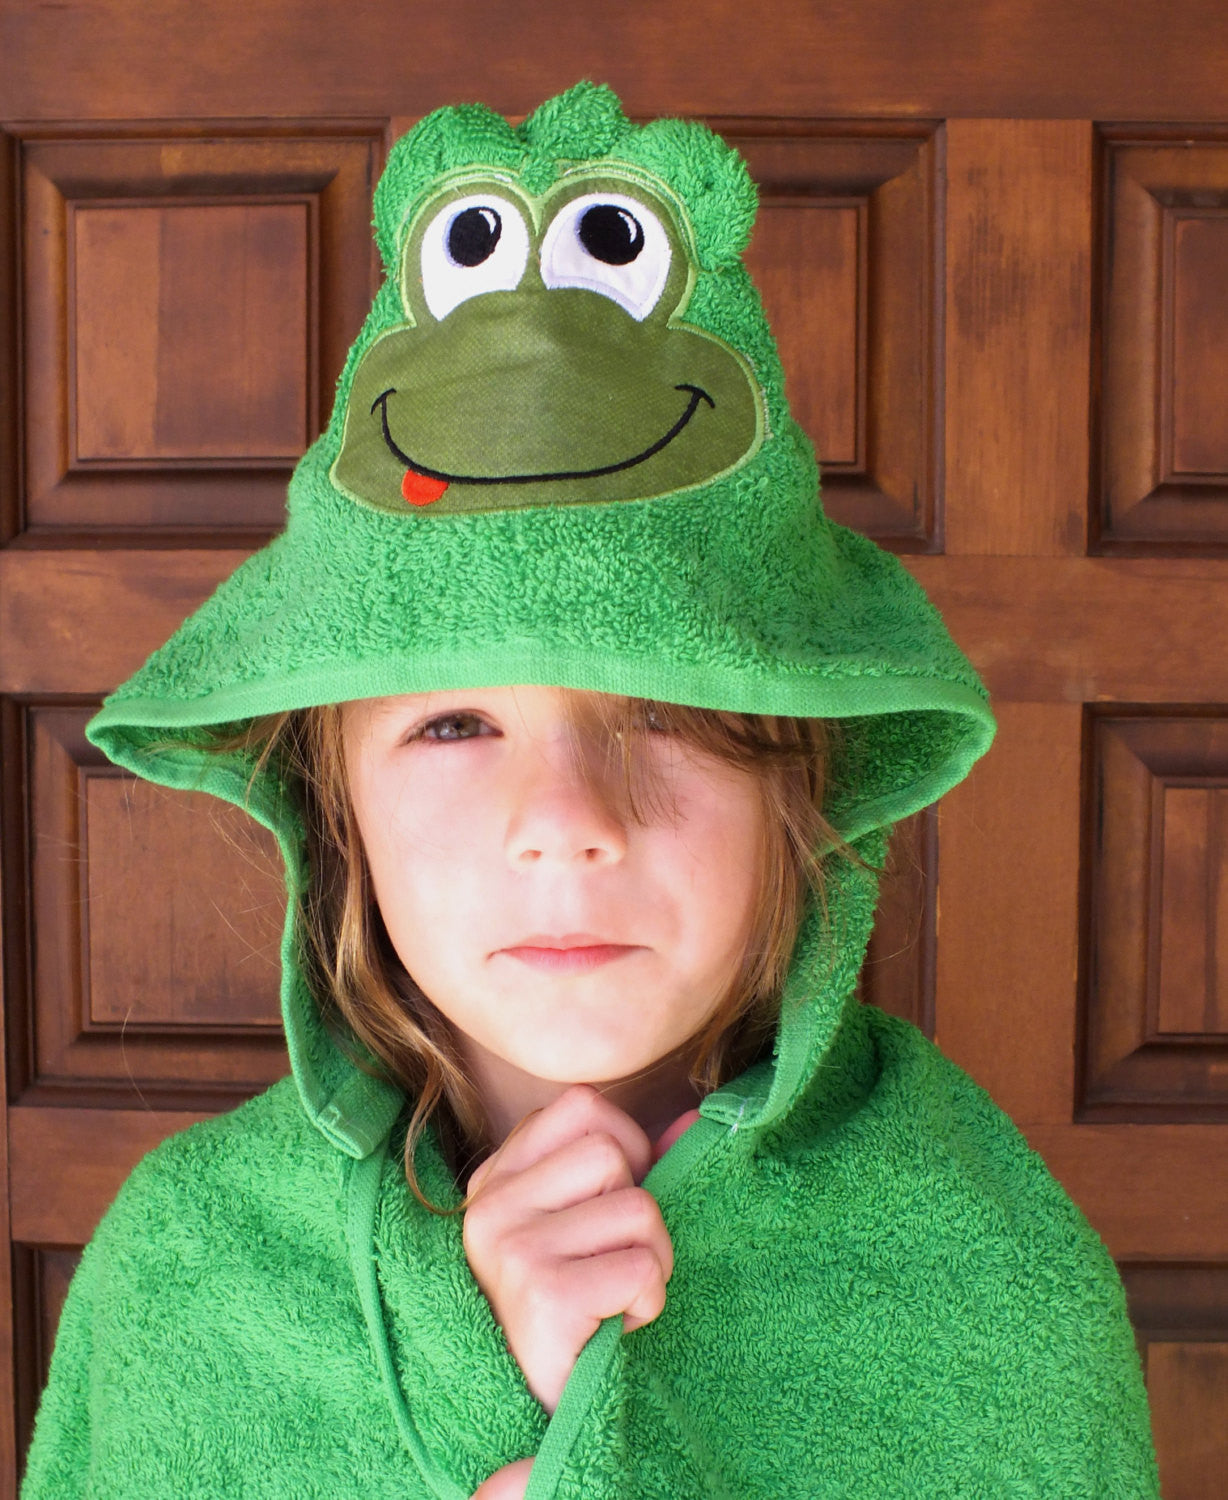 Frog hooded towel - personalized hooded towel